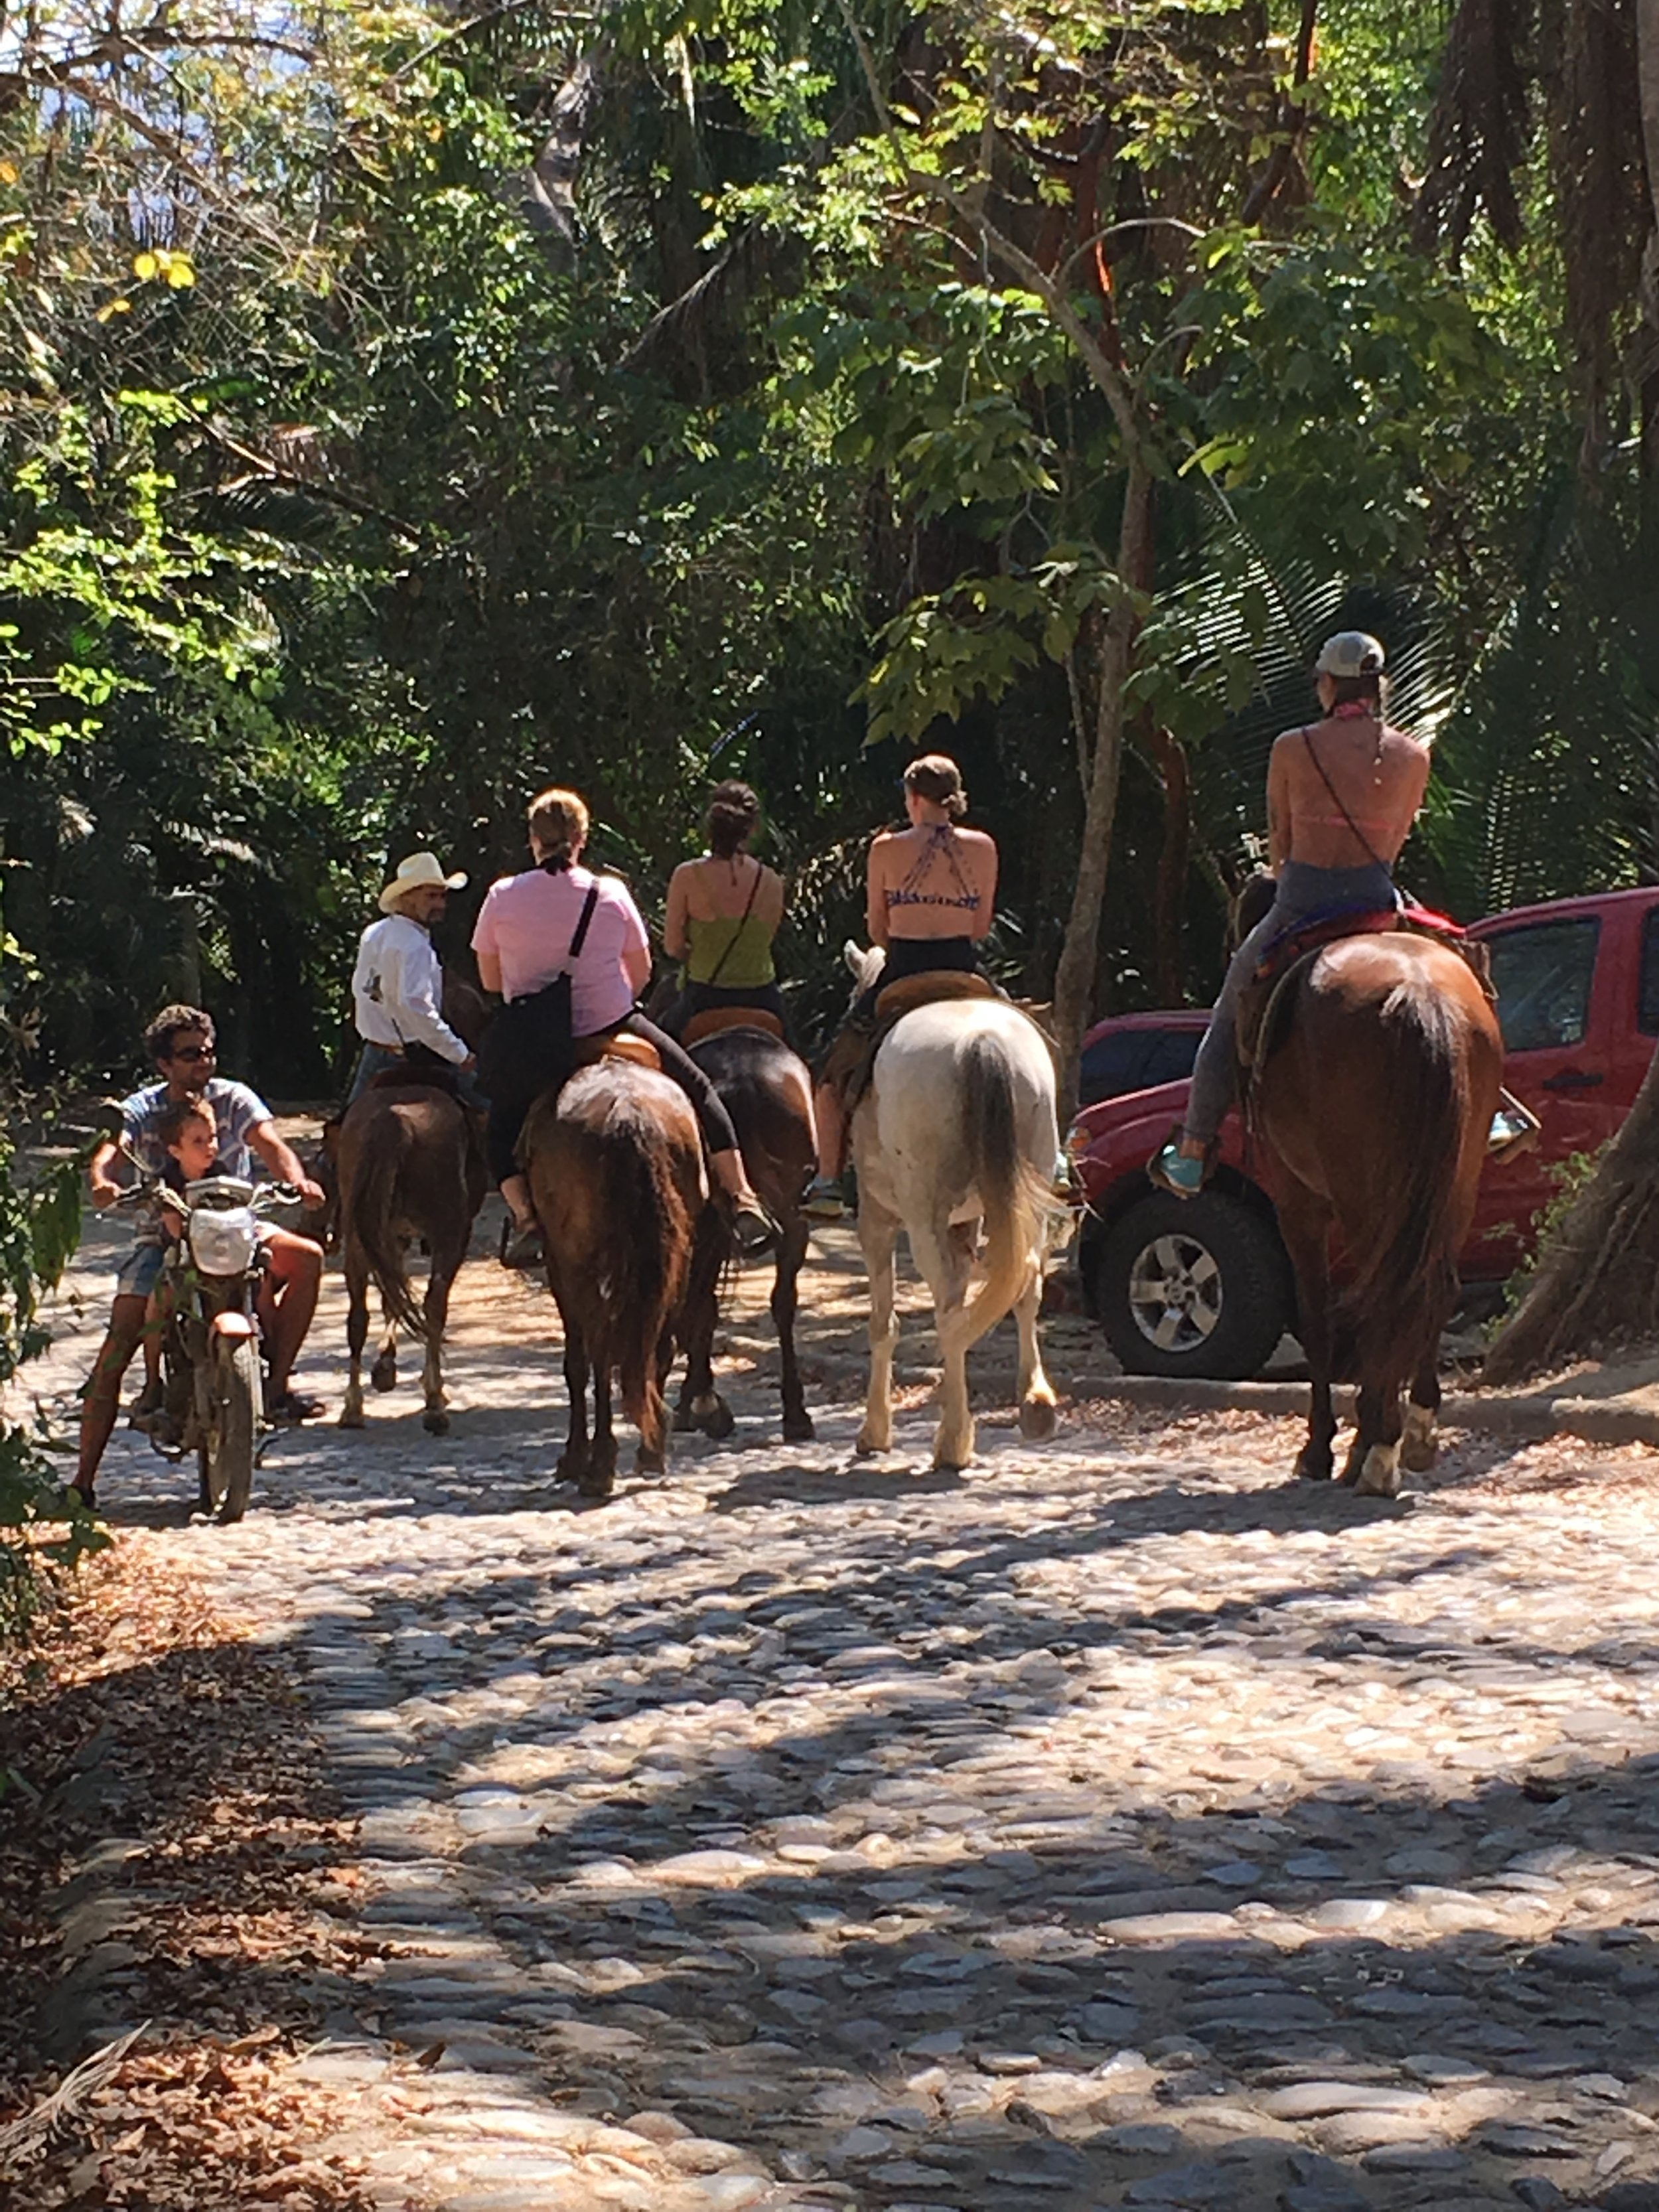 Horseback riding is one of the favorite activities.